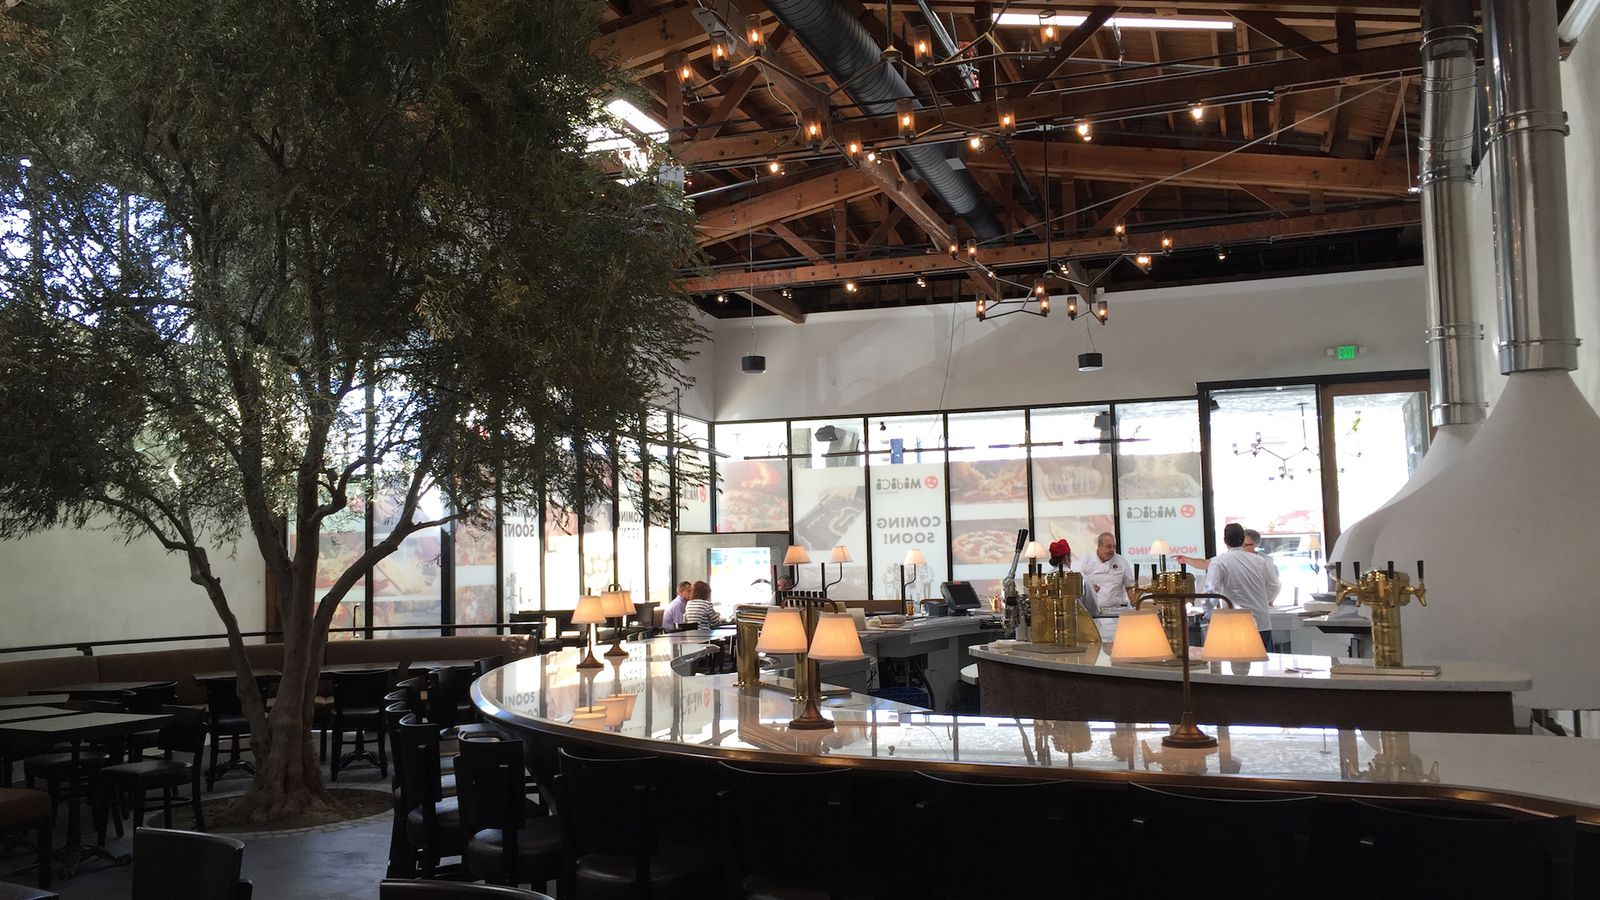 midici in sherman oaks joins the crowded fast